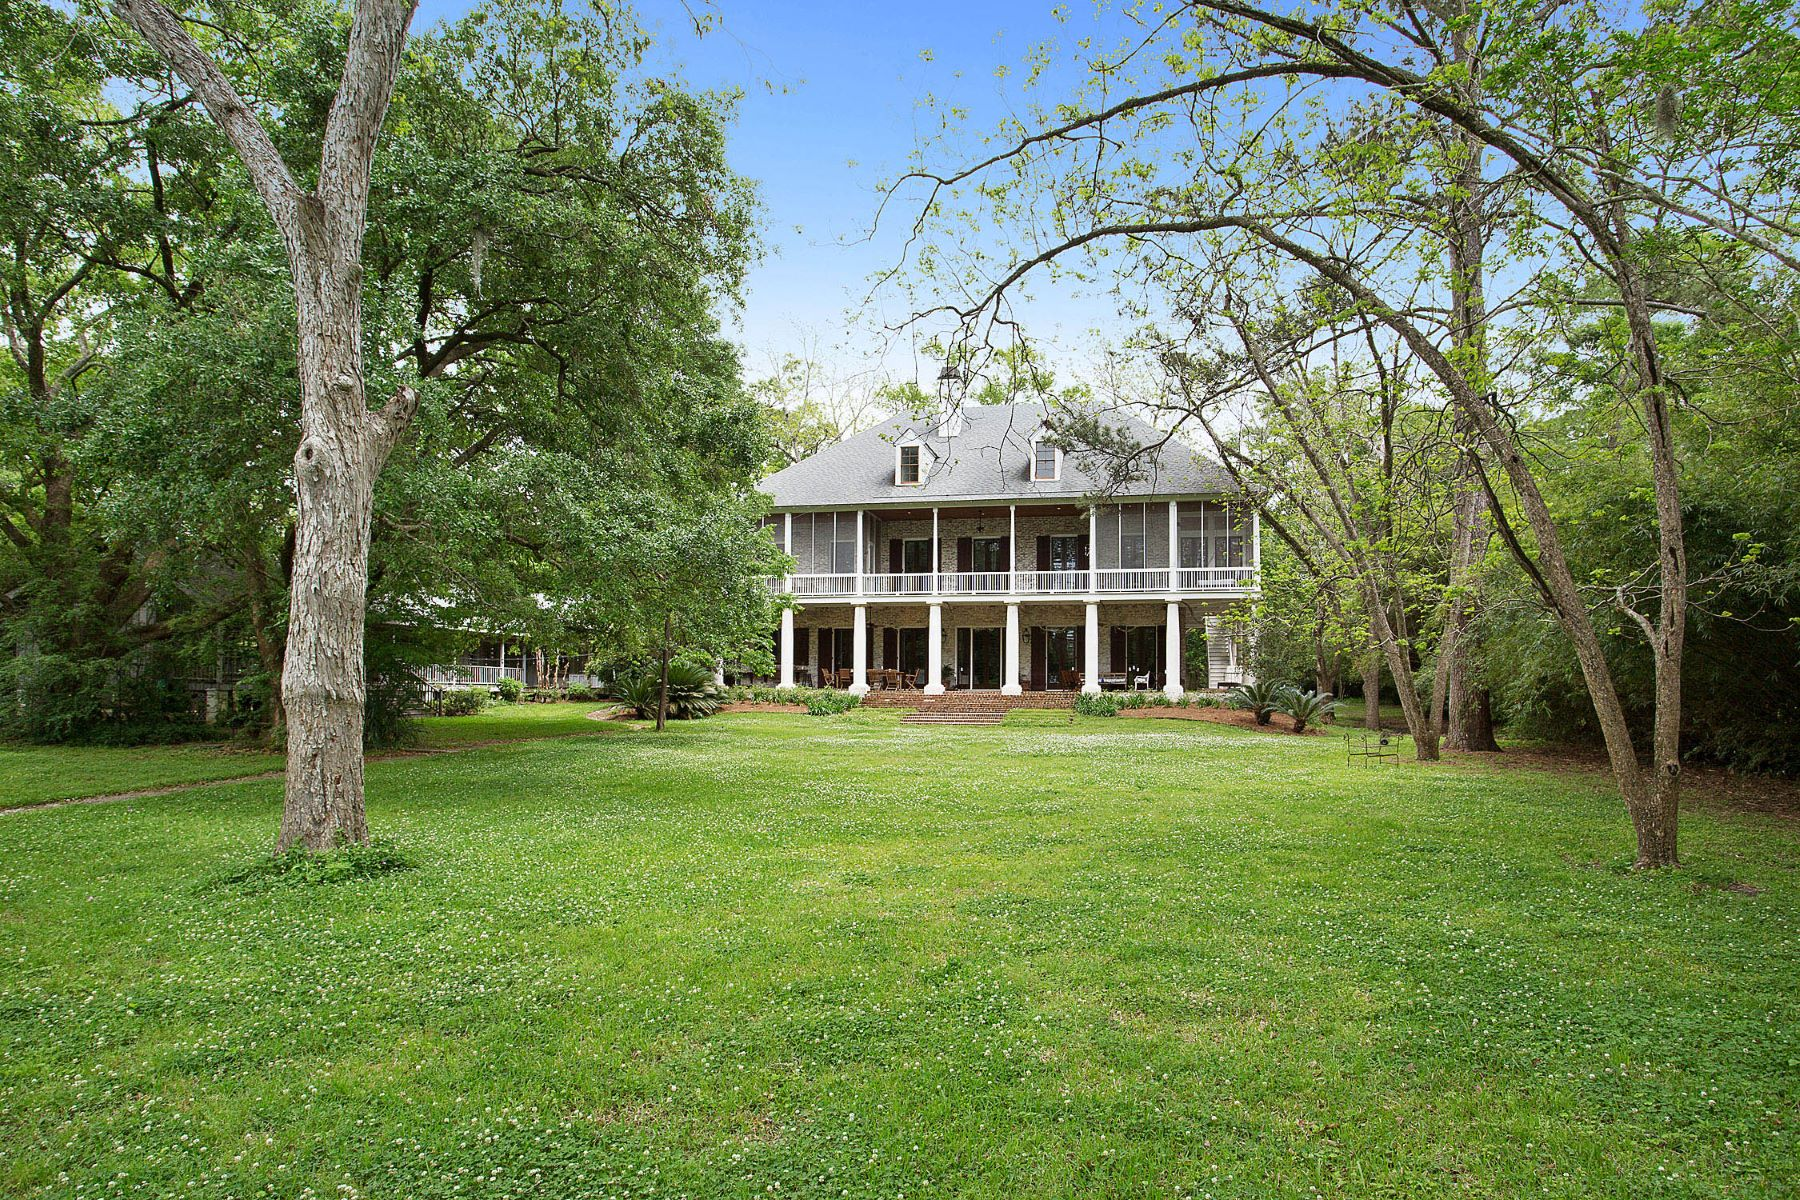 Additional photo for property listing at 138 Deloaks Road  Madisonville, Louisiana 70447 United States